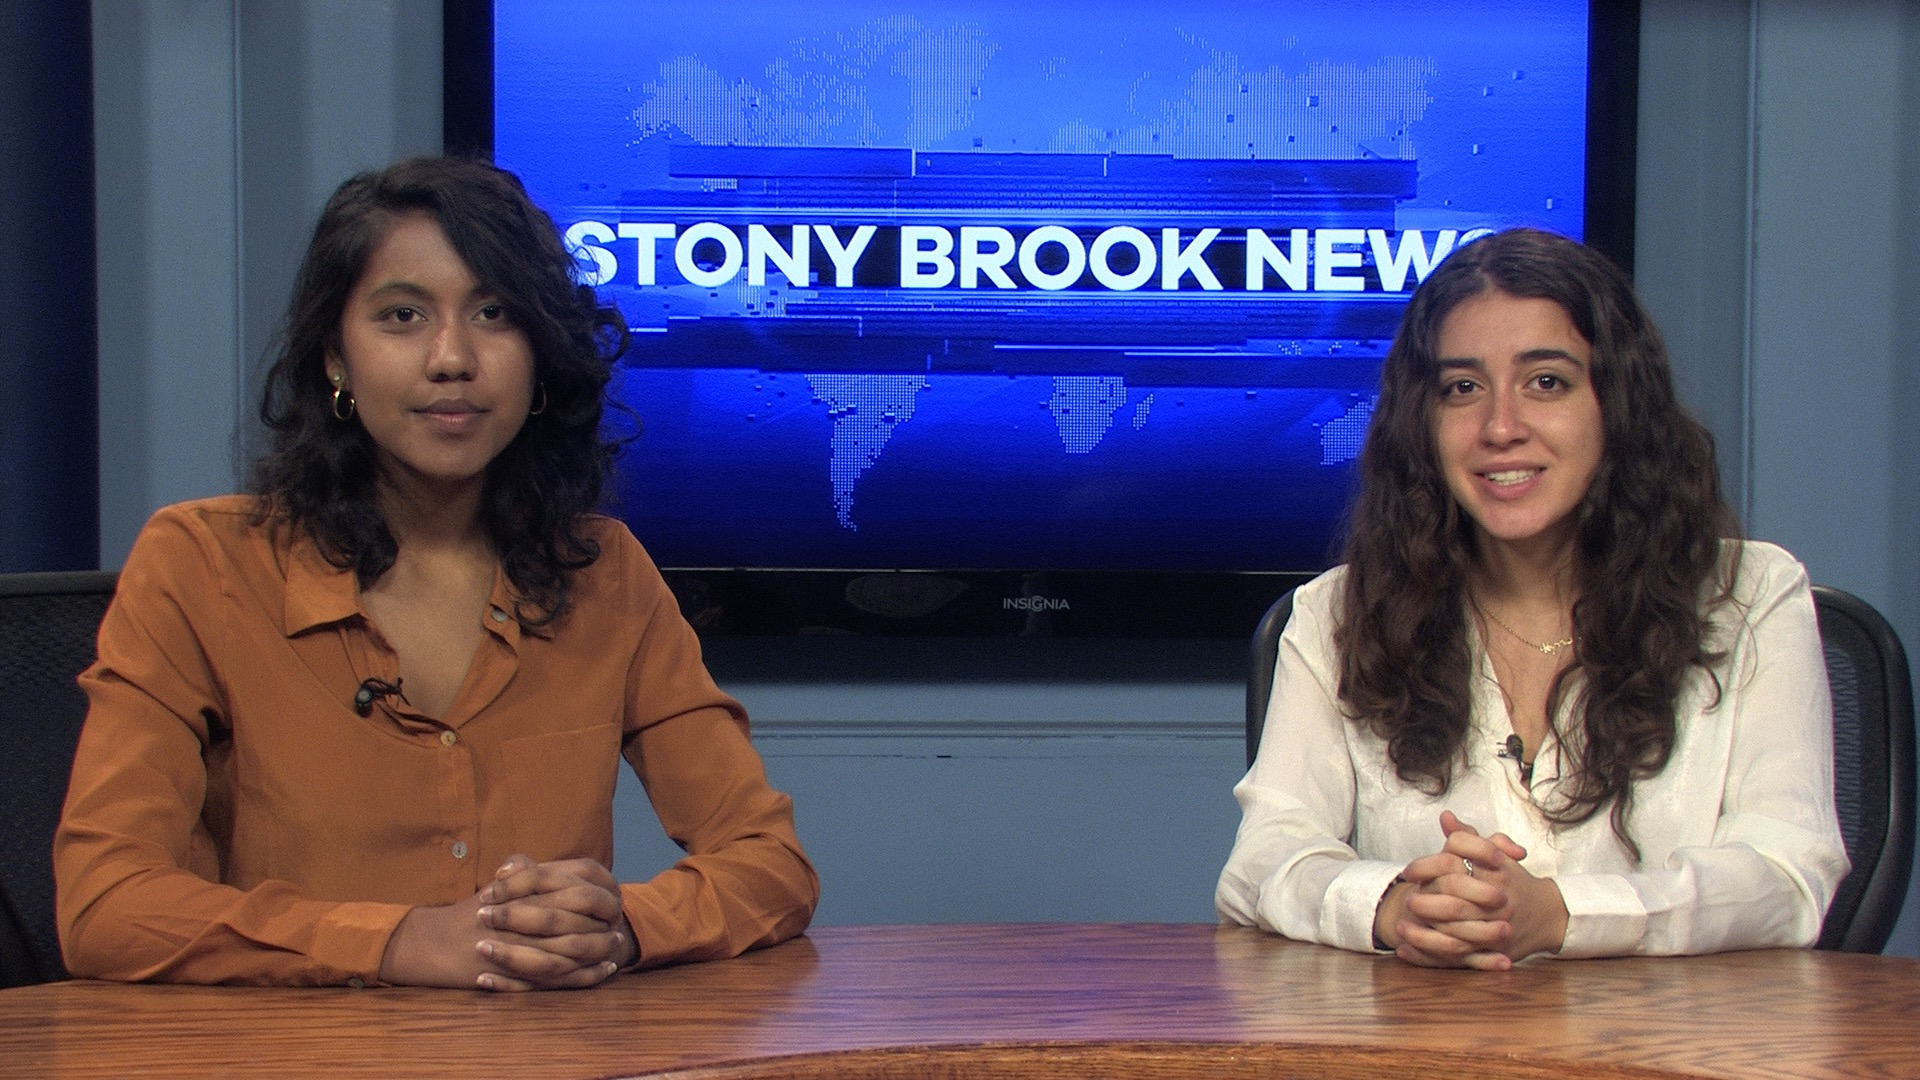 Stony Brook News – November 13, 2019